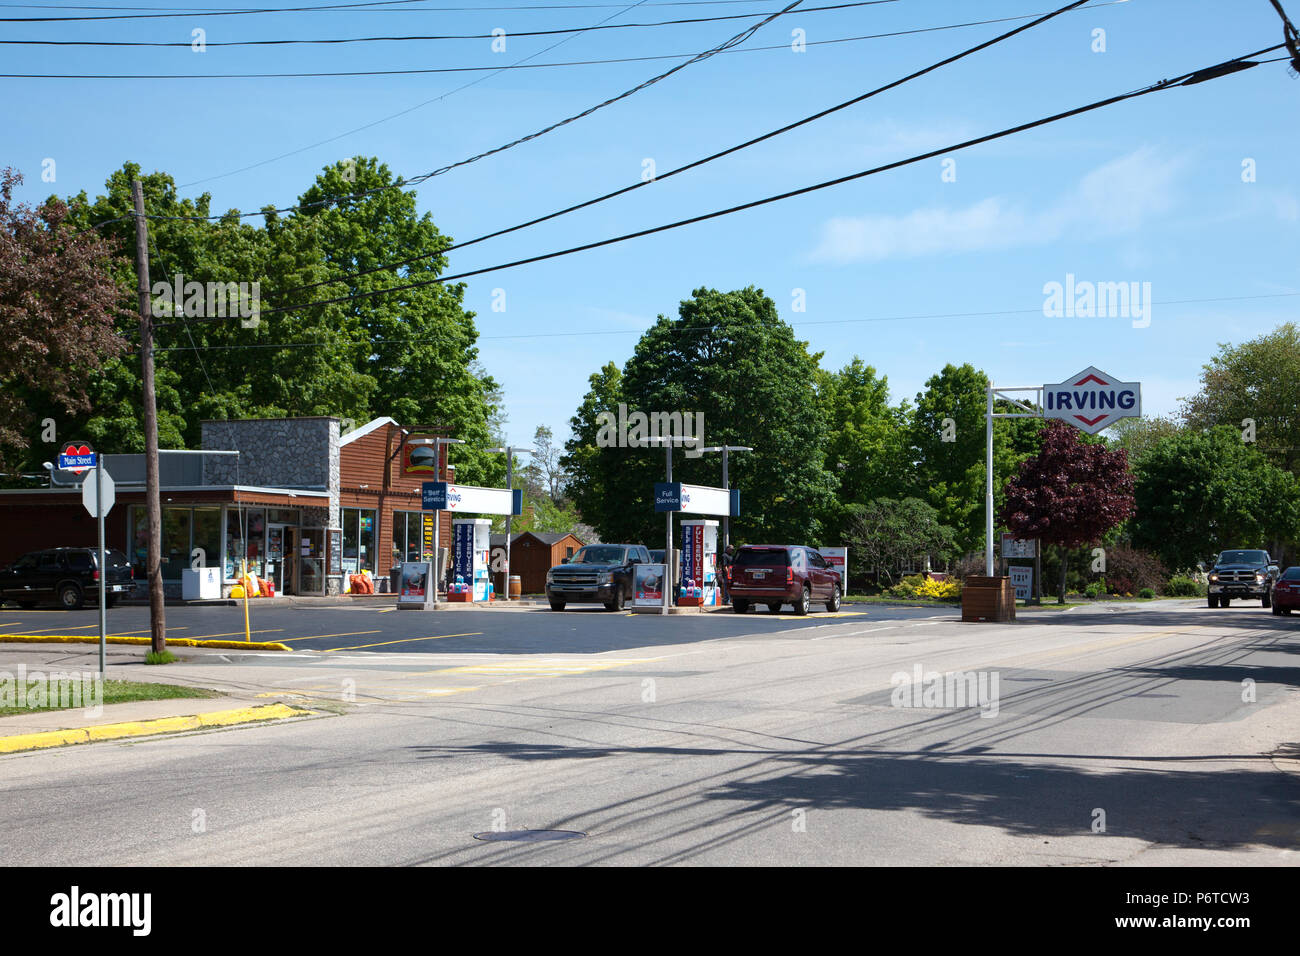 June 4, 2018- Middleton, Nova Scotia: The unique looking Irving Gas Station on Main Street, Middleton, Nova Scotia with customers pumping gasa - Stock Image